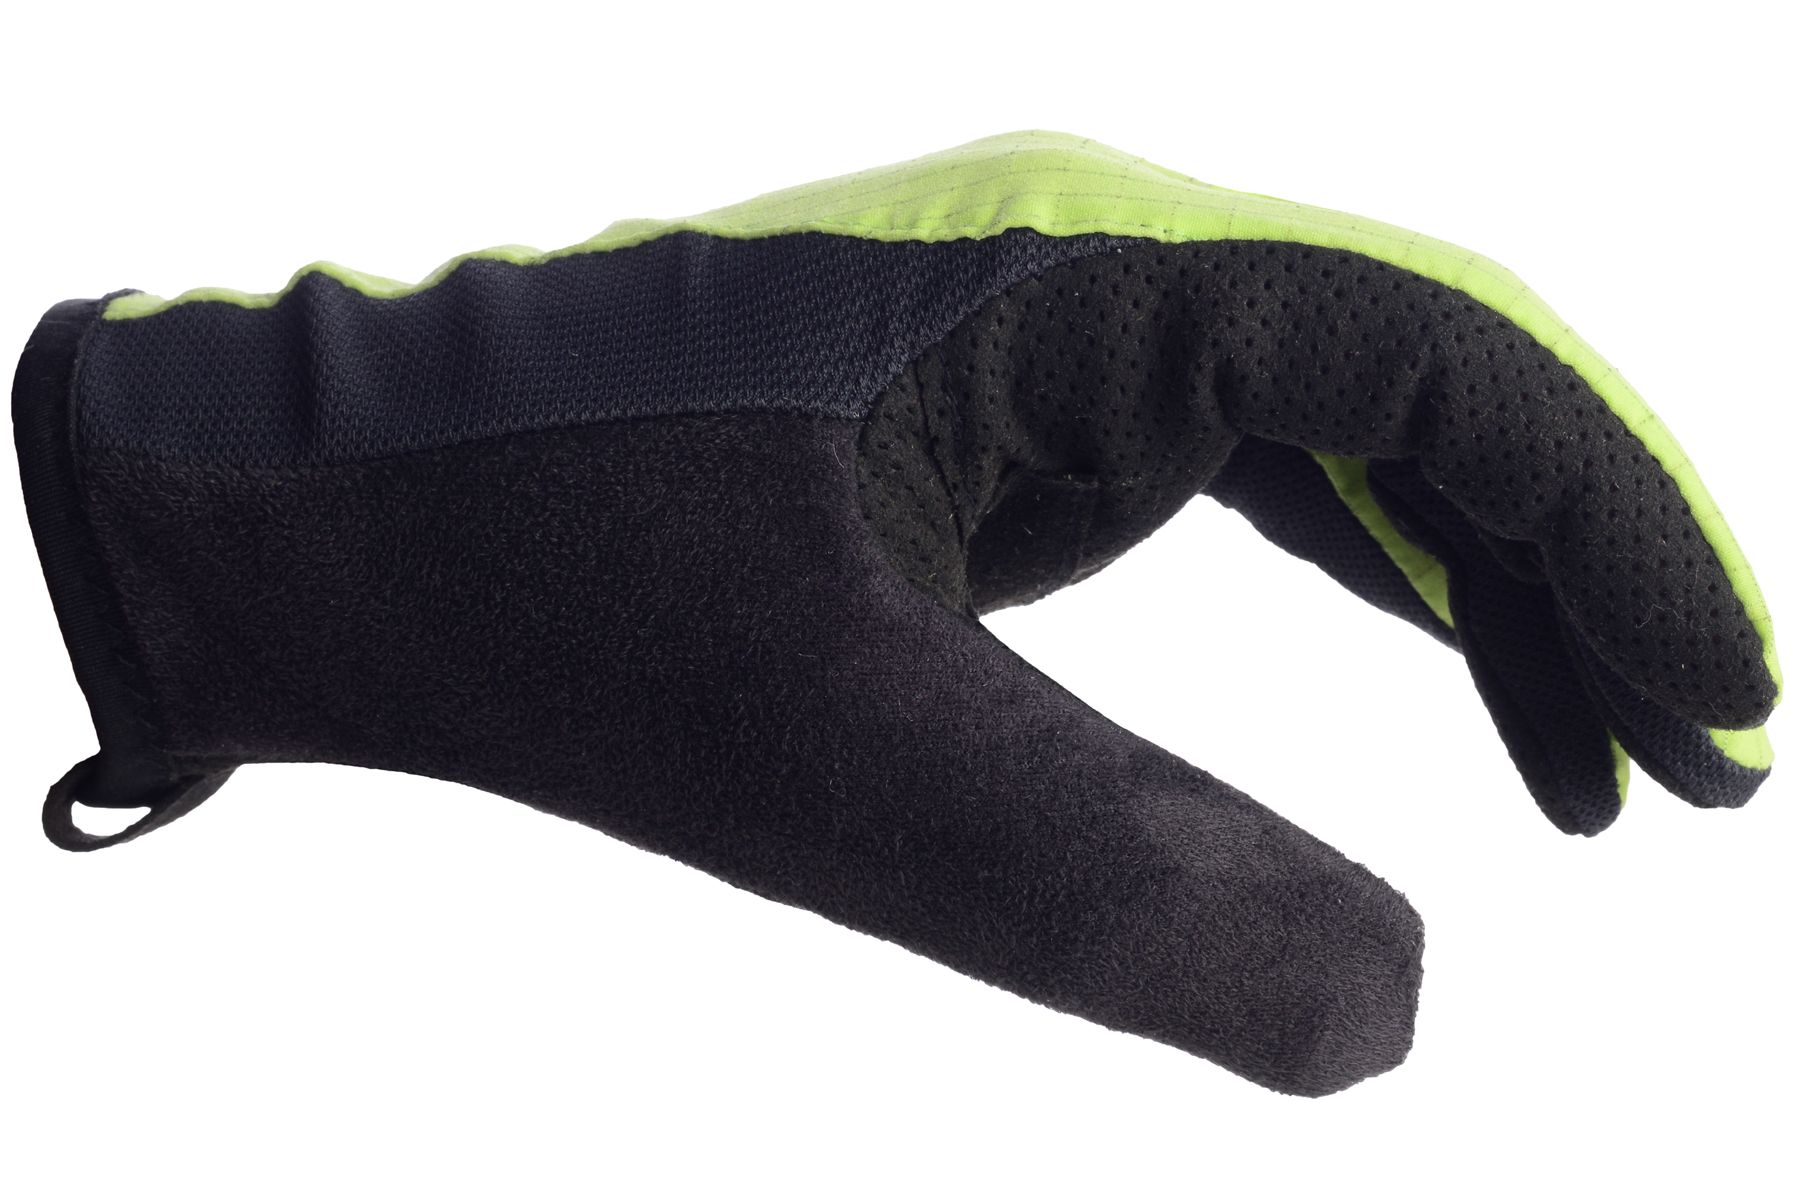 Radhandschuhe Long Finger Summer Glove L1